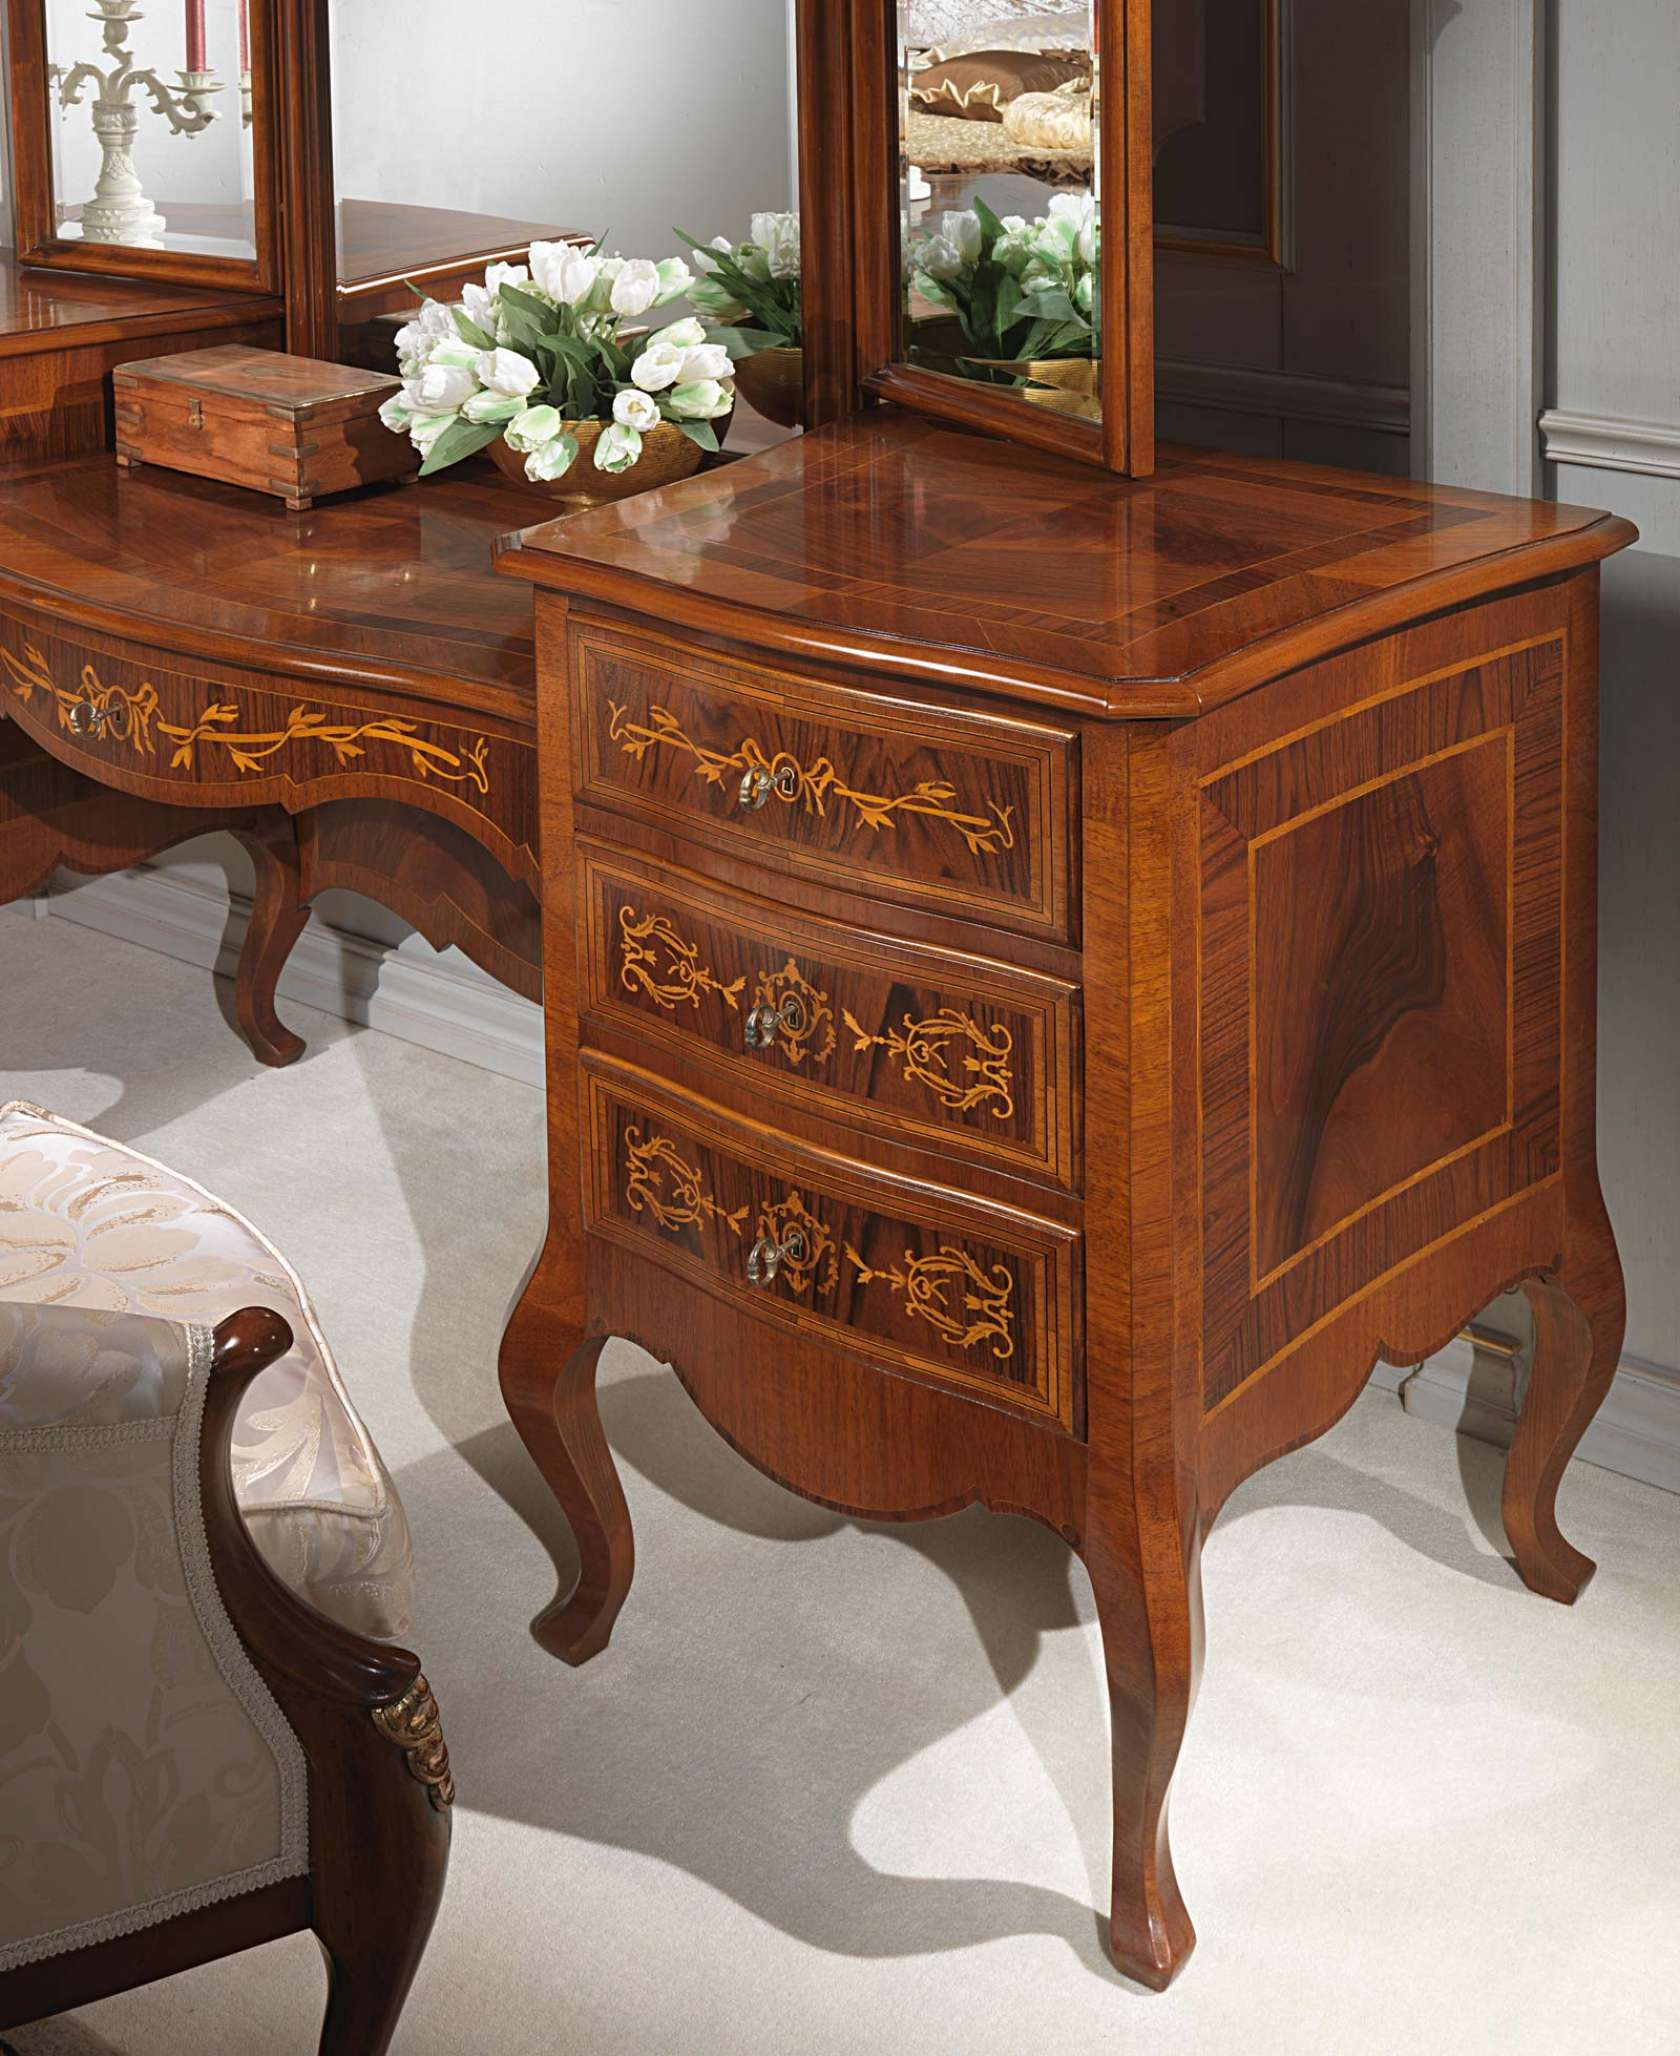 Classic Louvre Bedroom, Inlaid Dressing Table